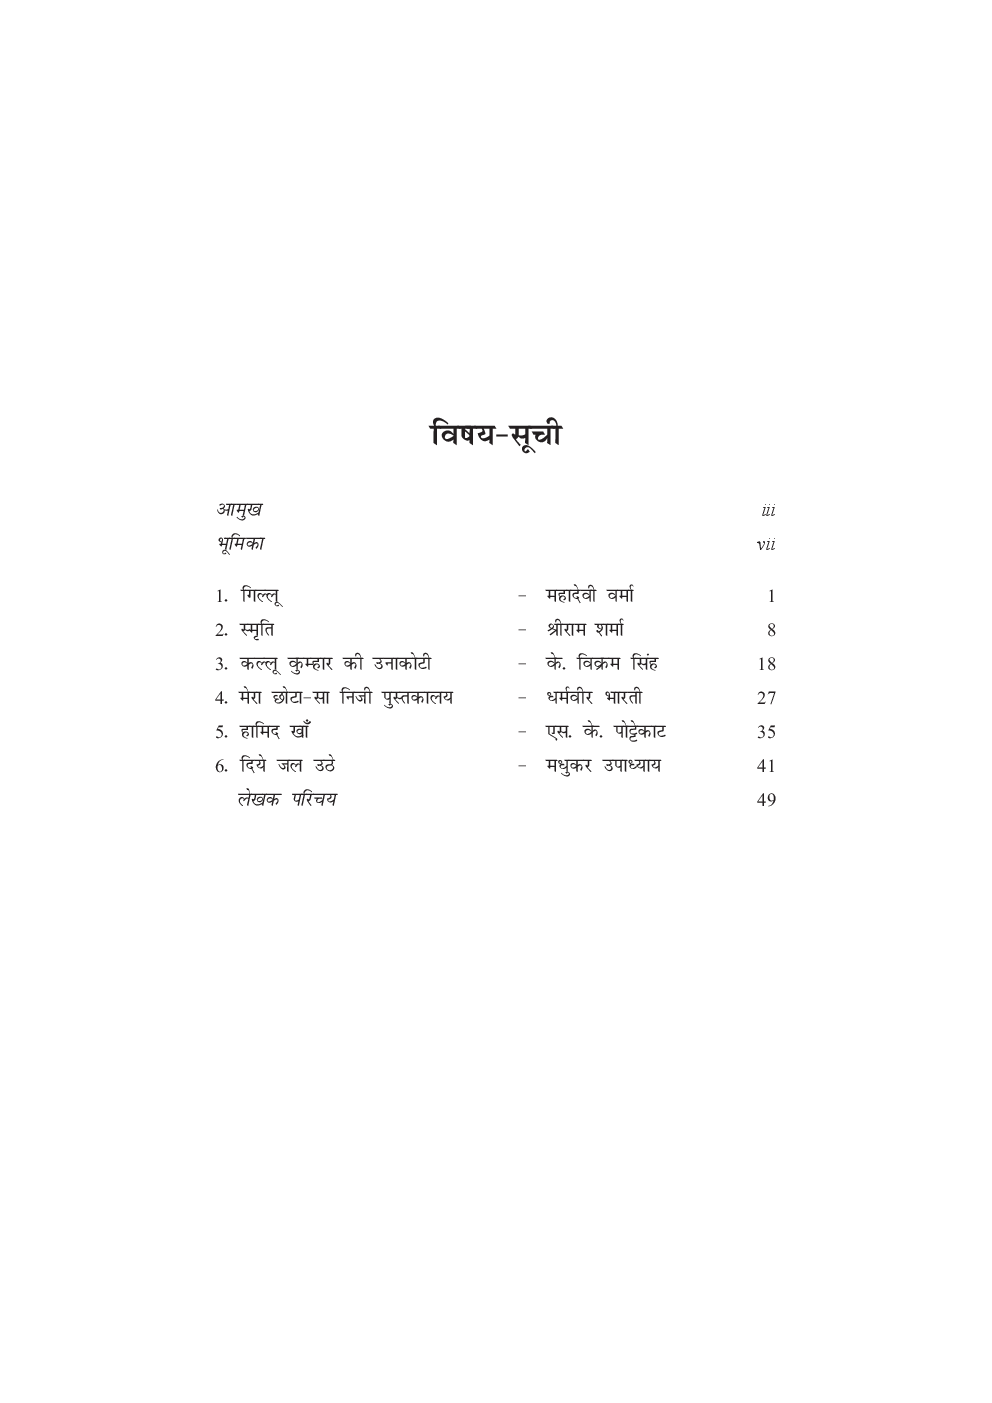 NCERT Hindi Sanchyan Textbook for Class 9th - Page 2